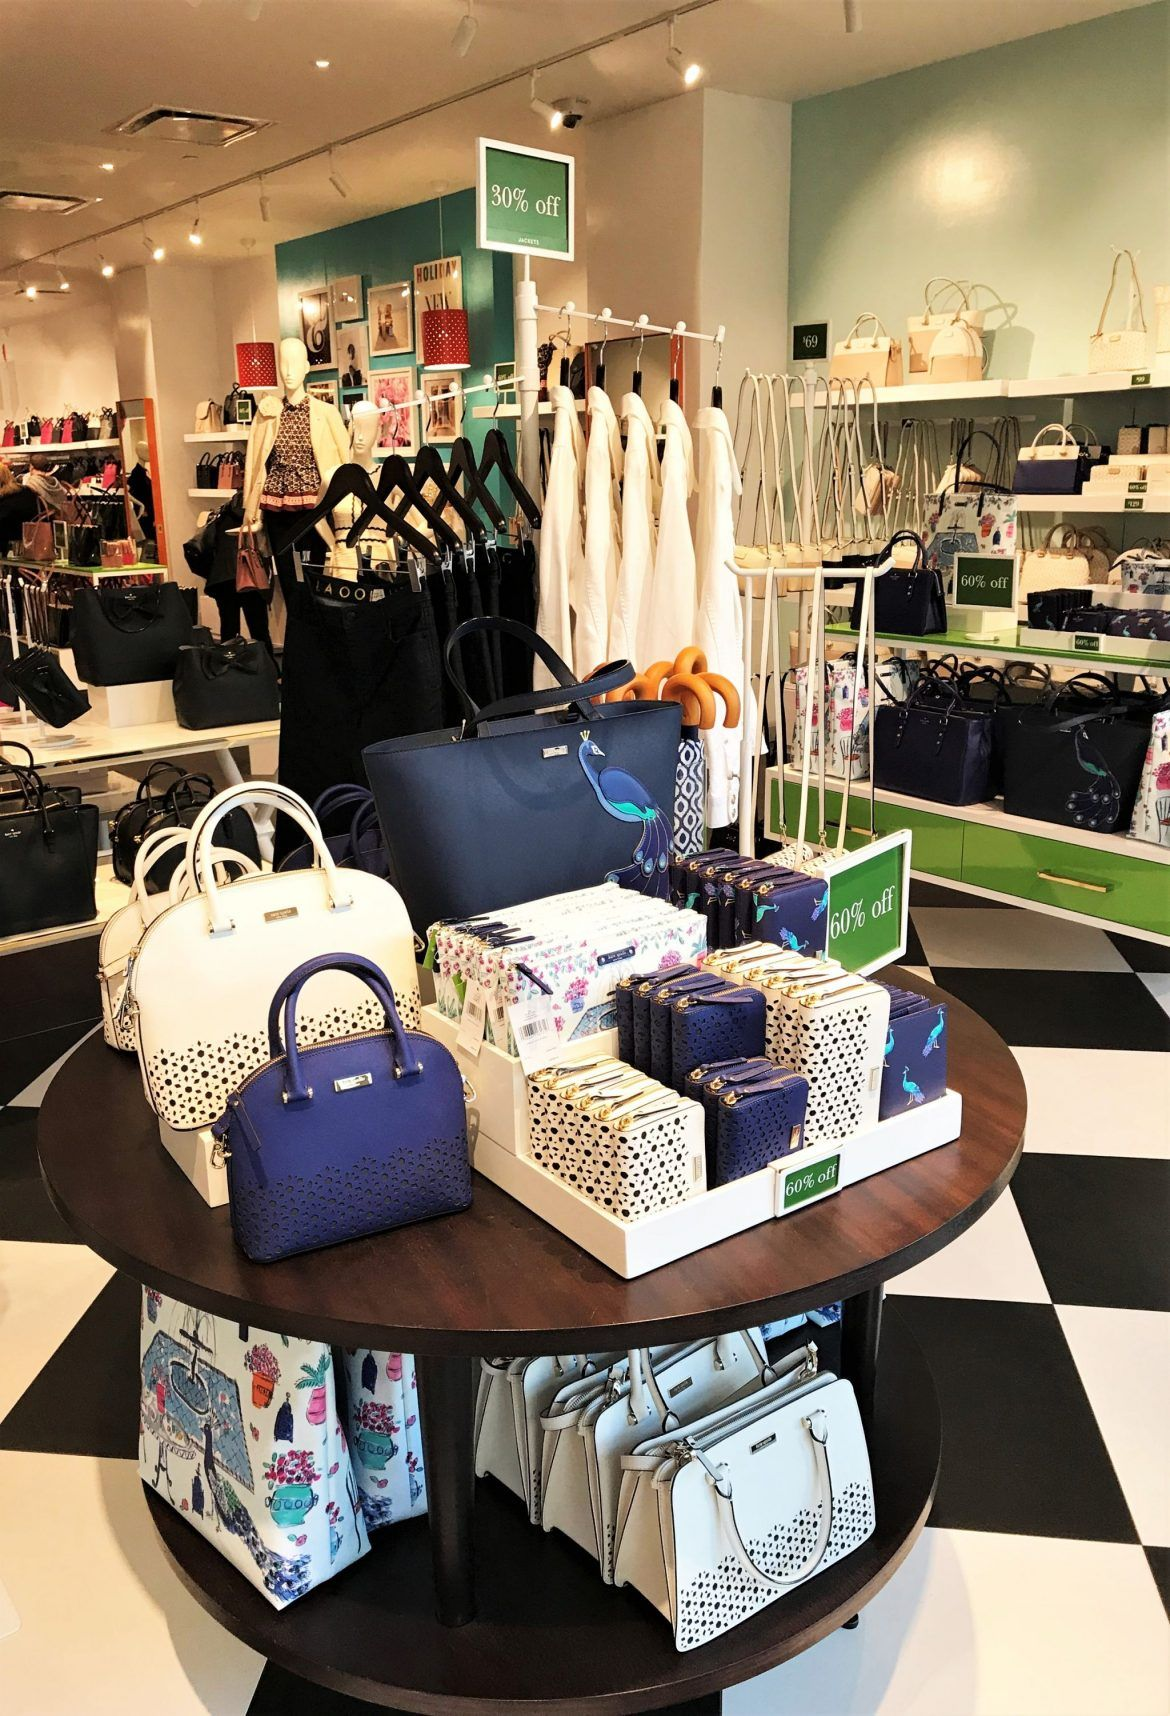 Kate Spade In Oklahoma City Kate Spade Outlet Cleaning Jewelry Kate Spade Store